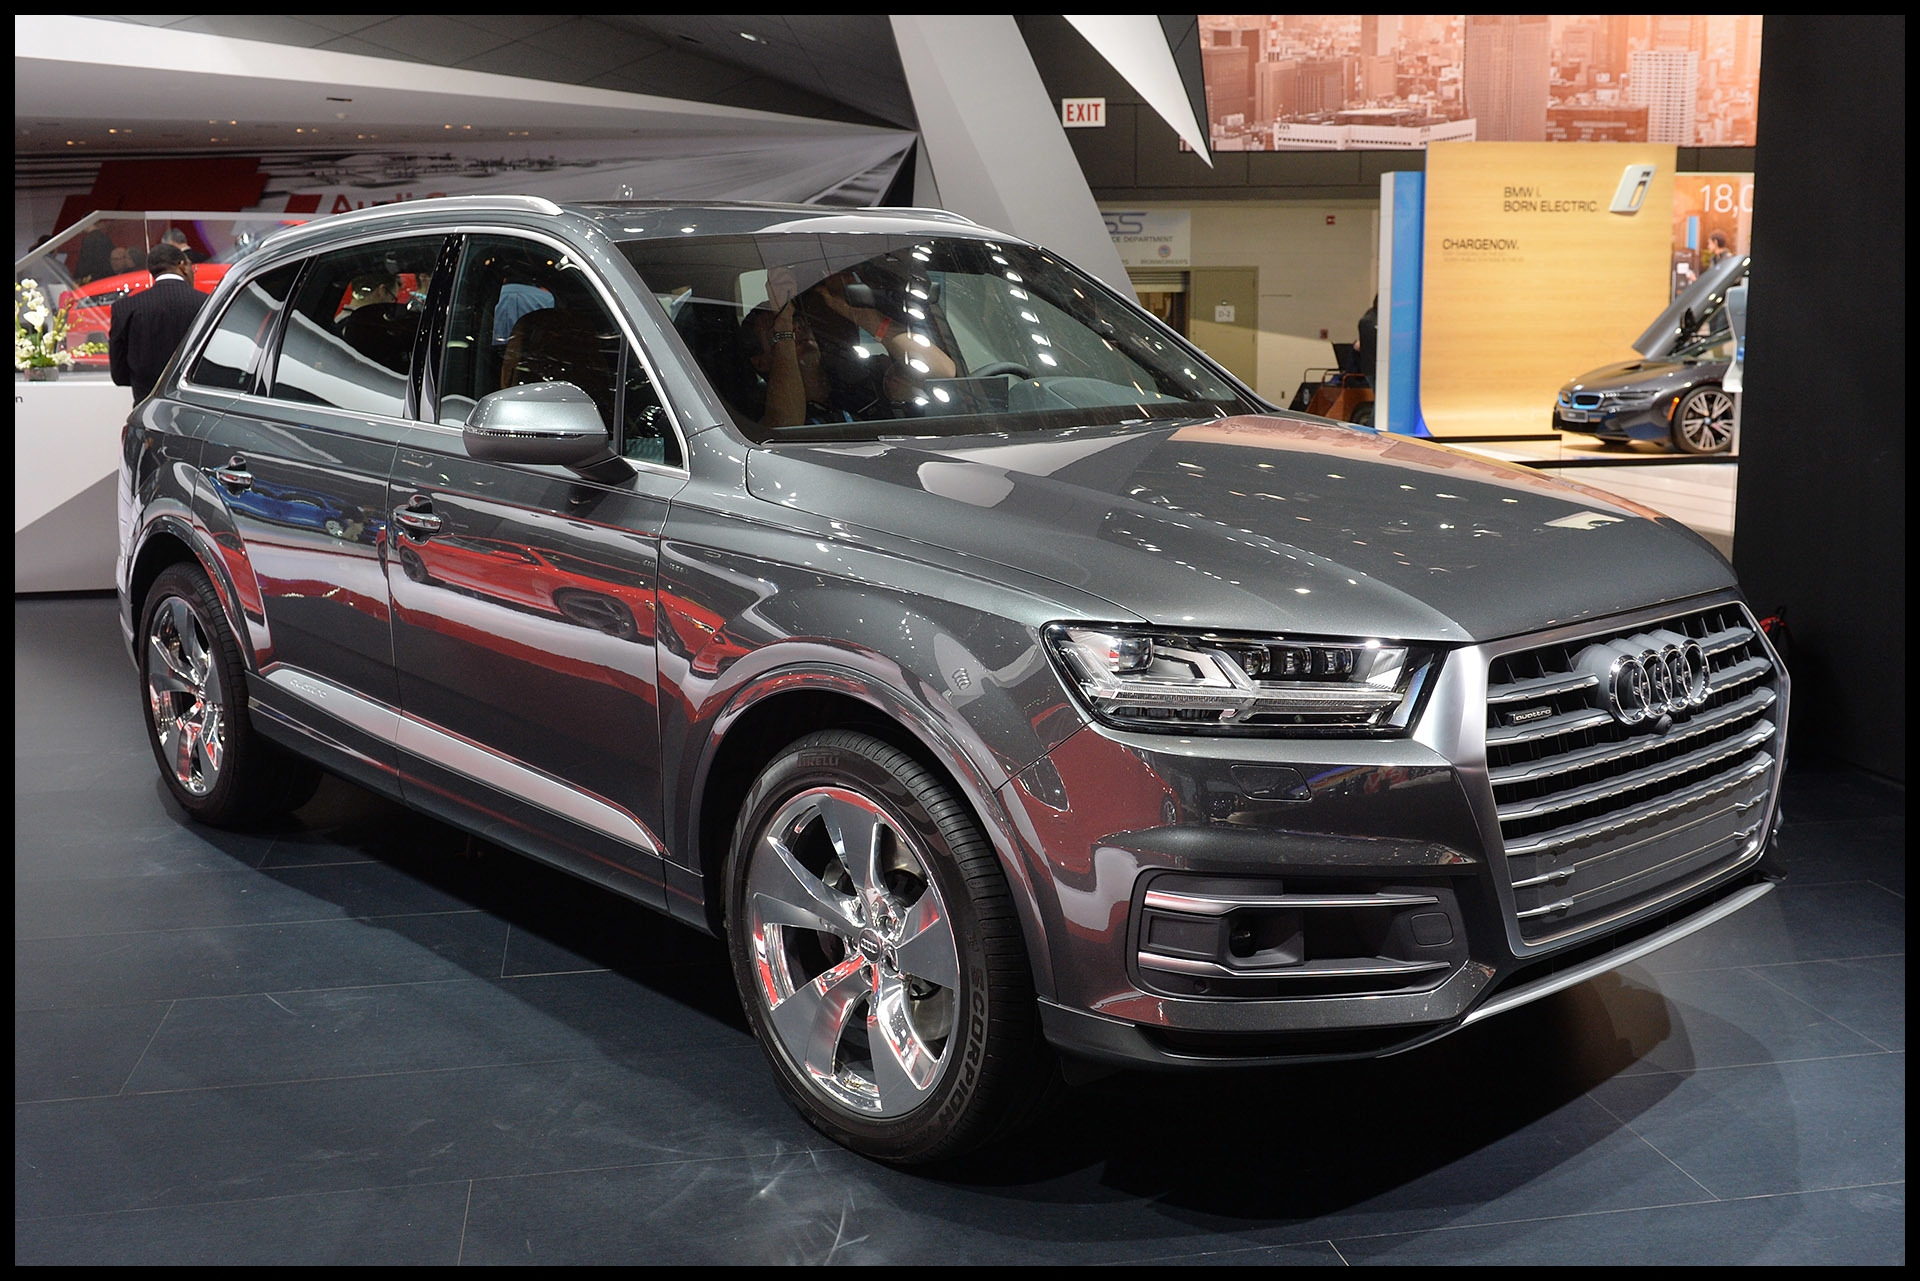 How Much is An Audi Q7 New Audi Q7 2018 Prices In Pakistan and Reviews